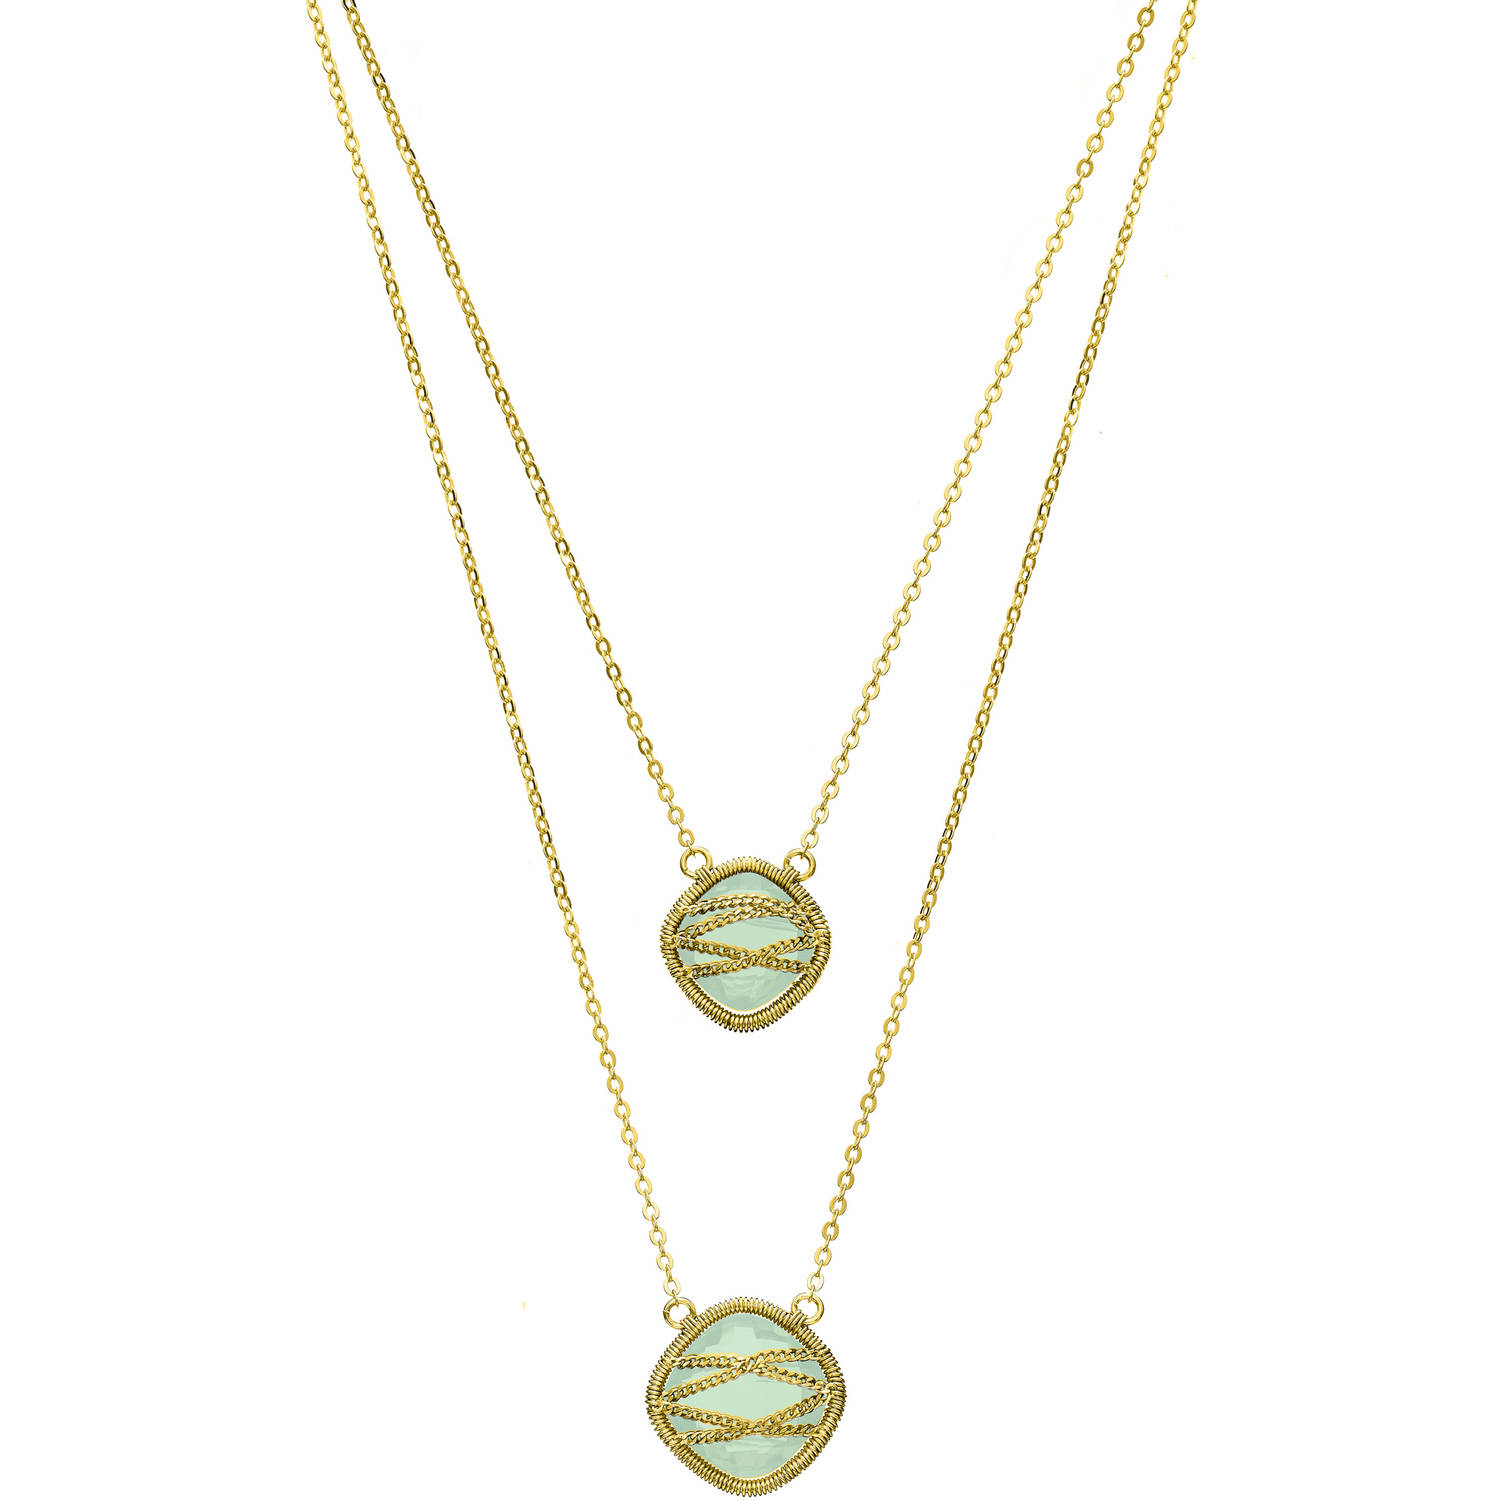 5th & Main 18kt Gold over Sterling Silver Hand-Wrapped Double-Drop Squared Chalcedony Stone Necklace by Generic